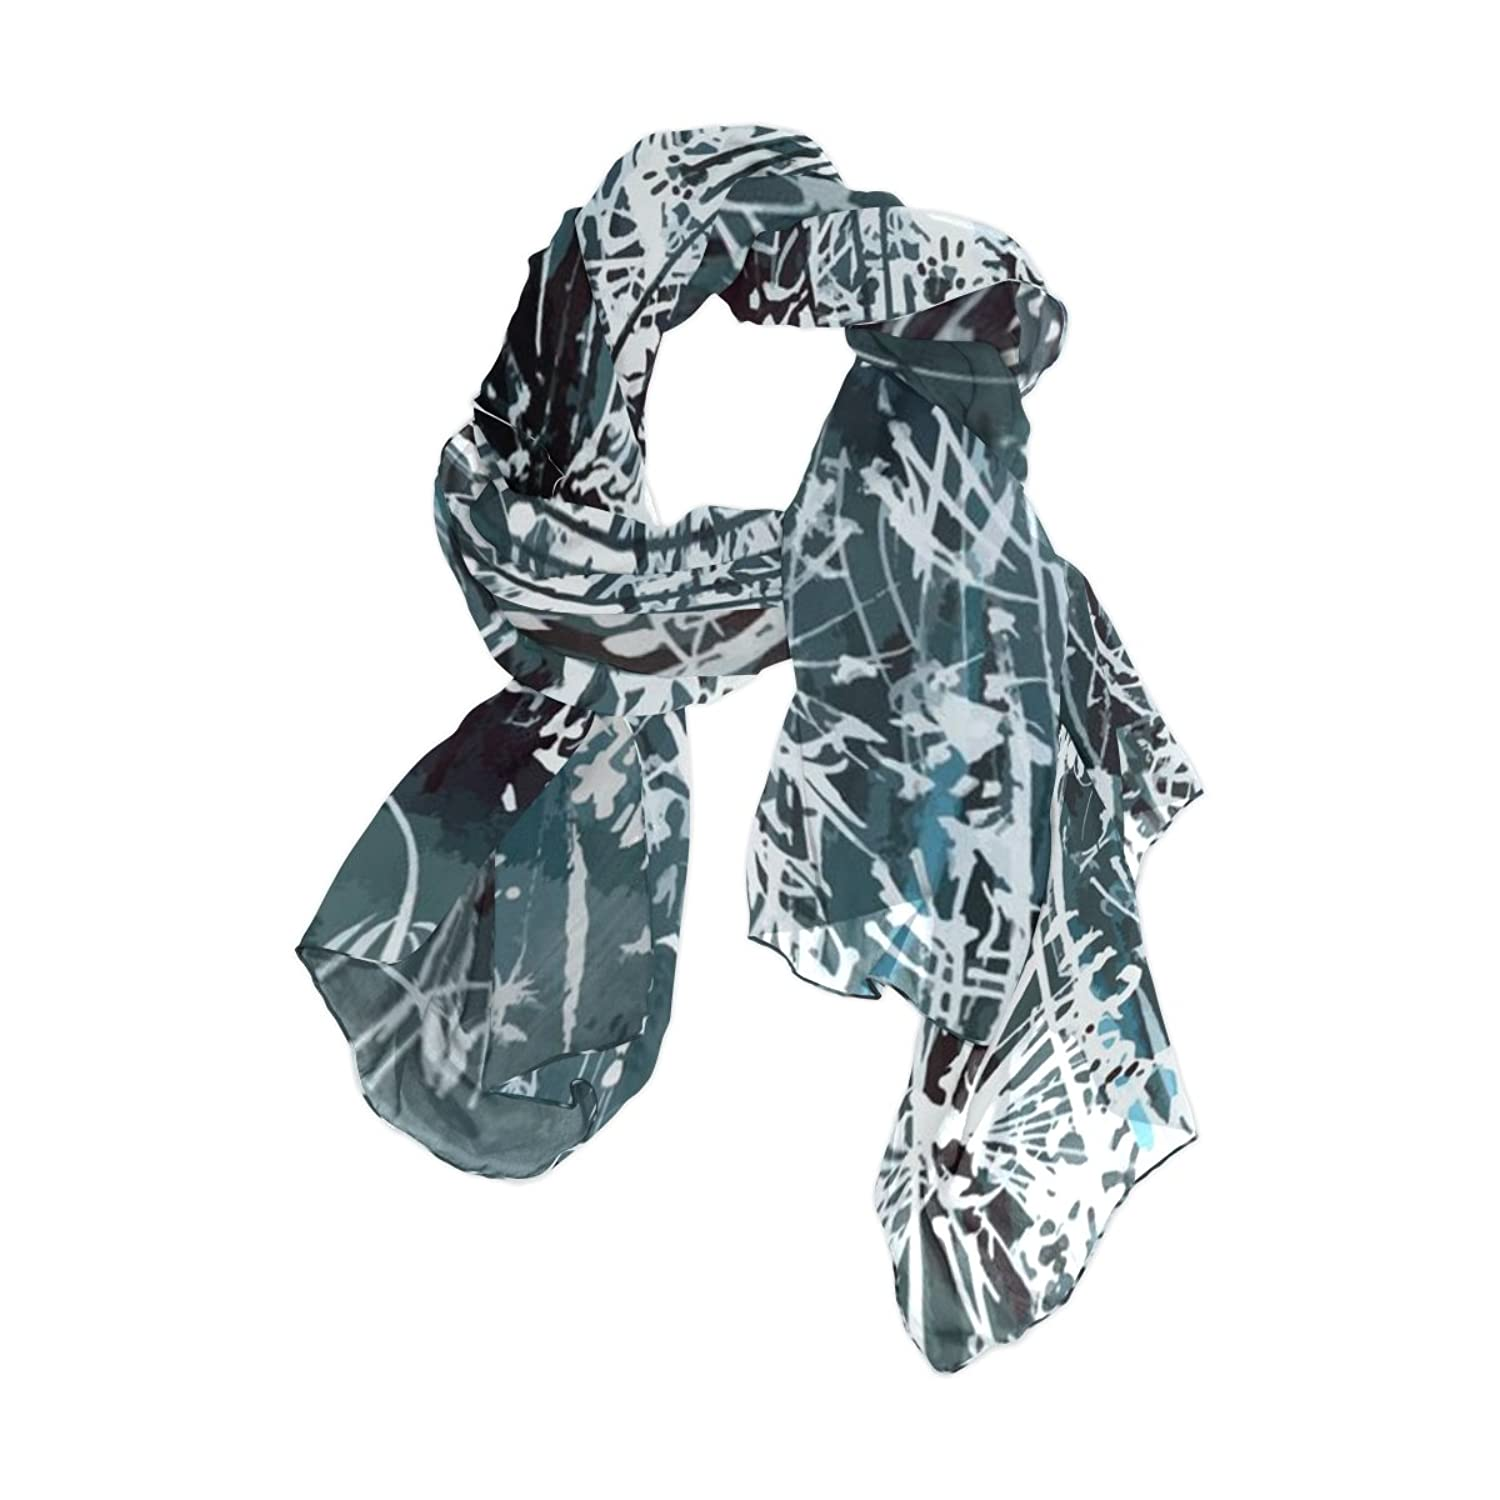 Lightweight Shawl Wrap Sheer Scarves,Abstract Art Floral,Oblong Chiffon Scarf